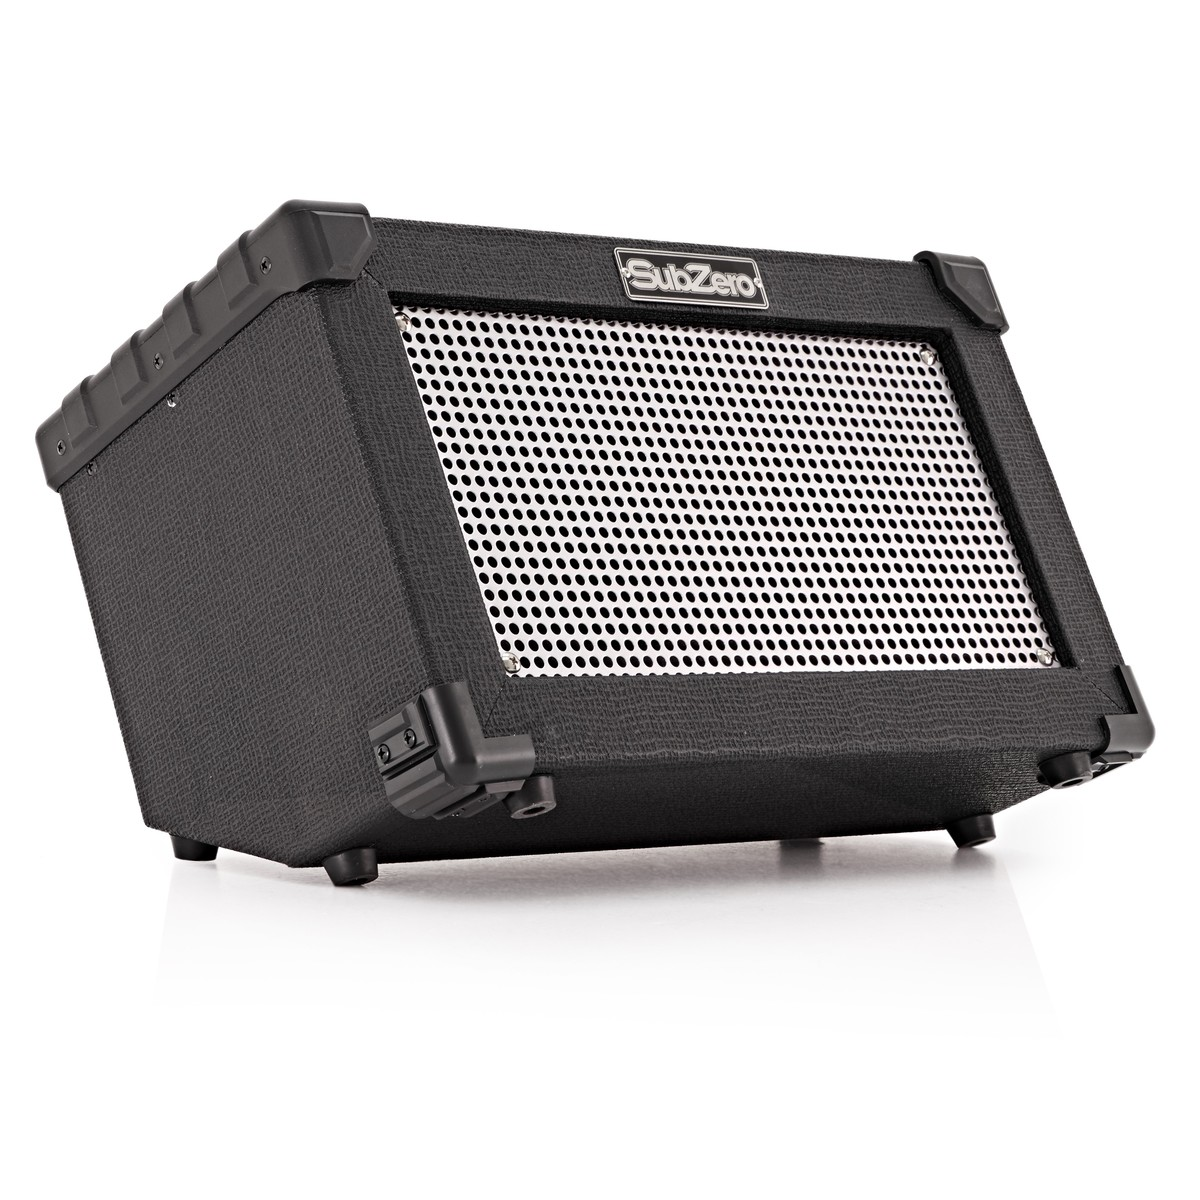 subzero rechargeable digital guitar amplifier at gear4music. Black Bedroom Furniture Sets. Home Design Ideas